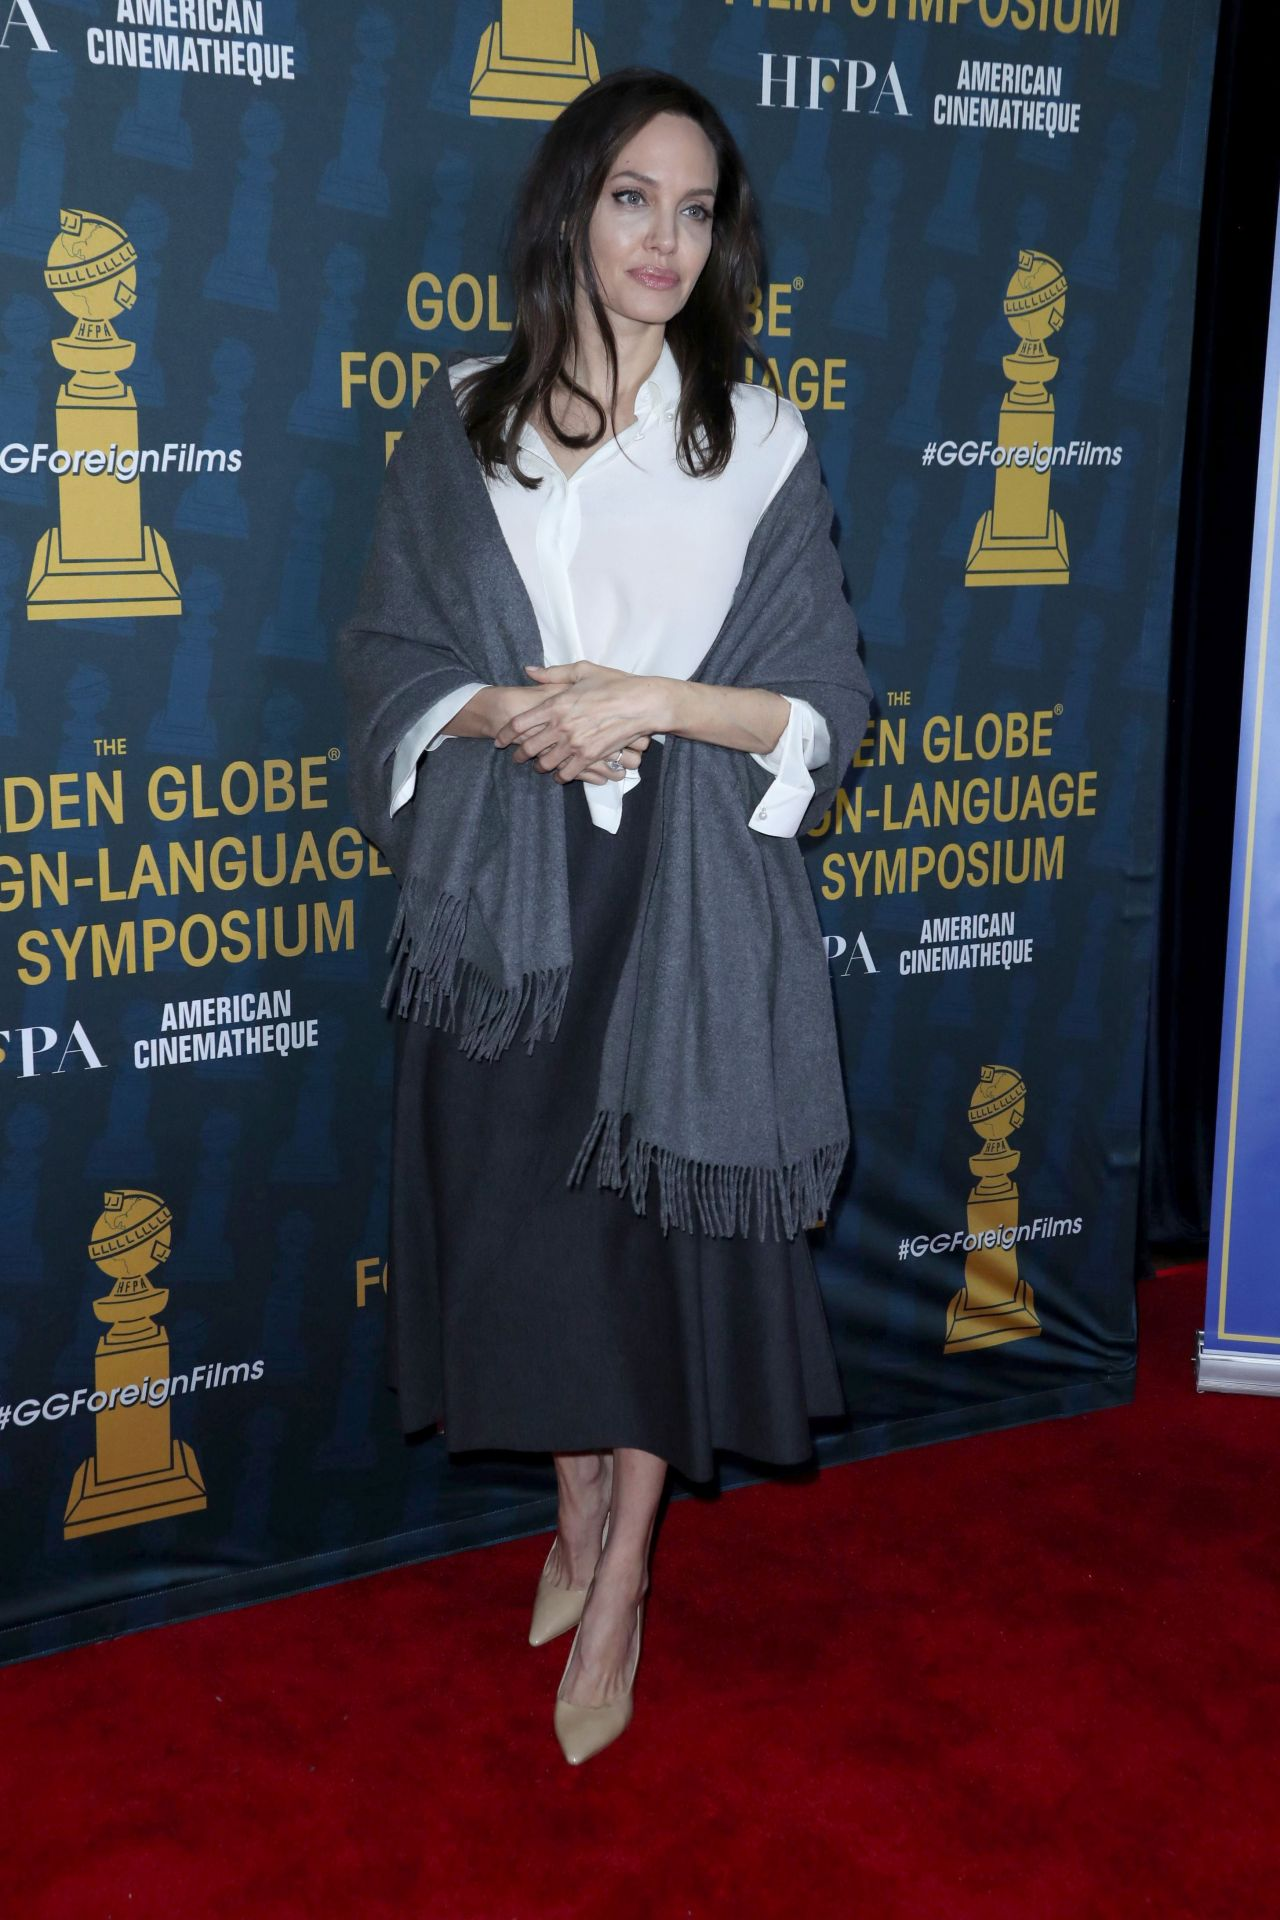 http://celebmafia.com/wp-content/uploads/2018/01/angelina-jolie-the-golden-globe-foreign-language-nominees-series-2018-symposium-in-la-3.jpg